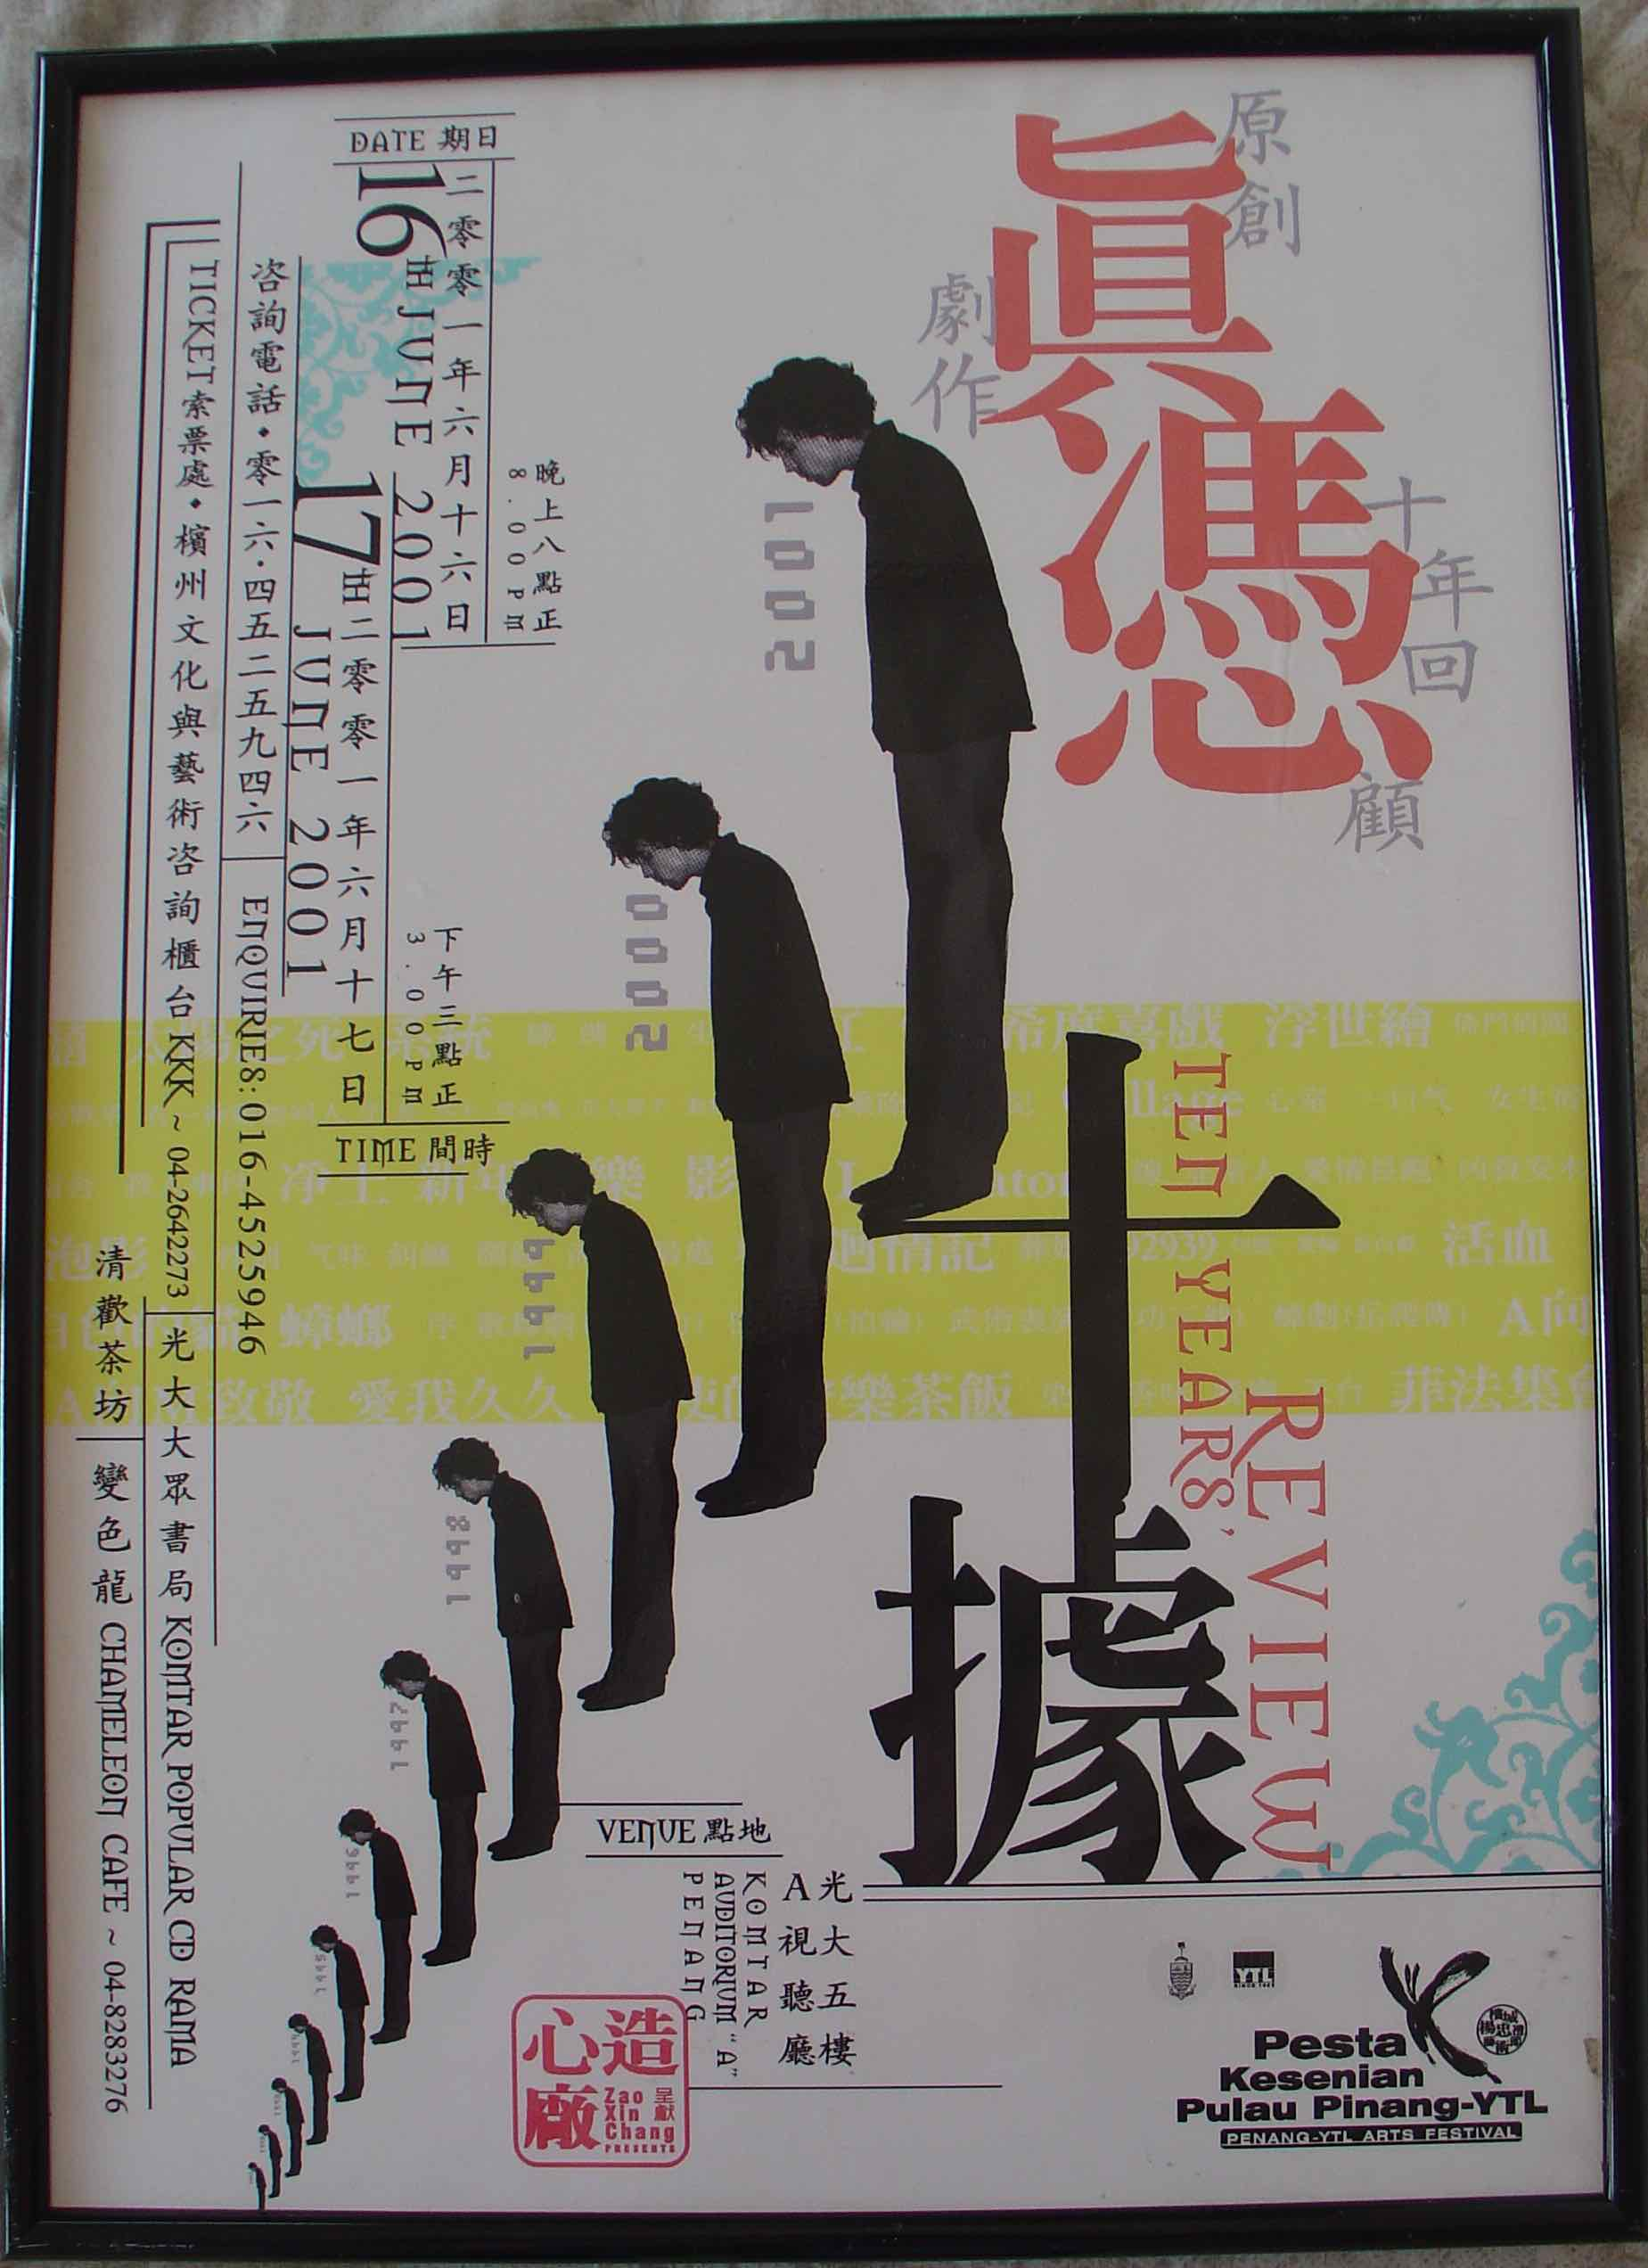 2001 Ten Years Review Poster